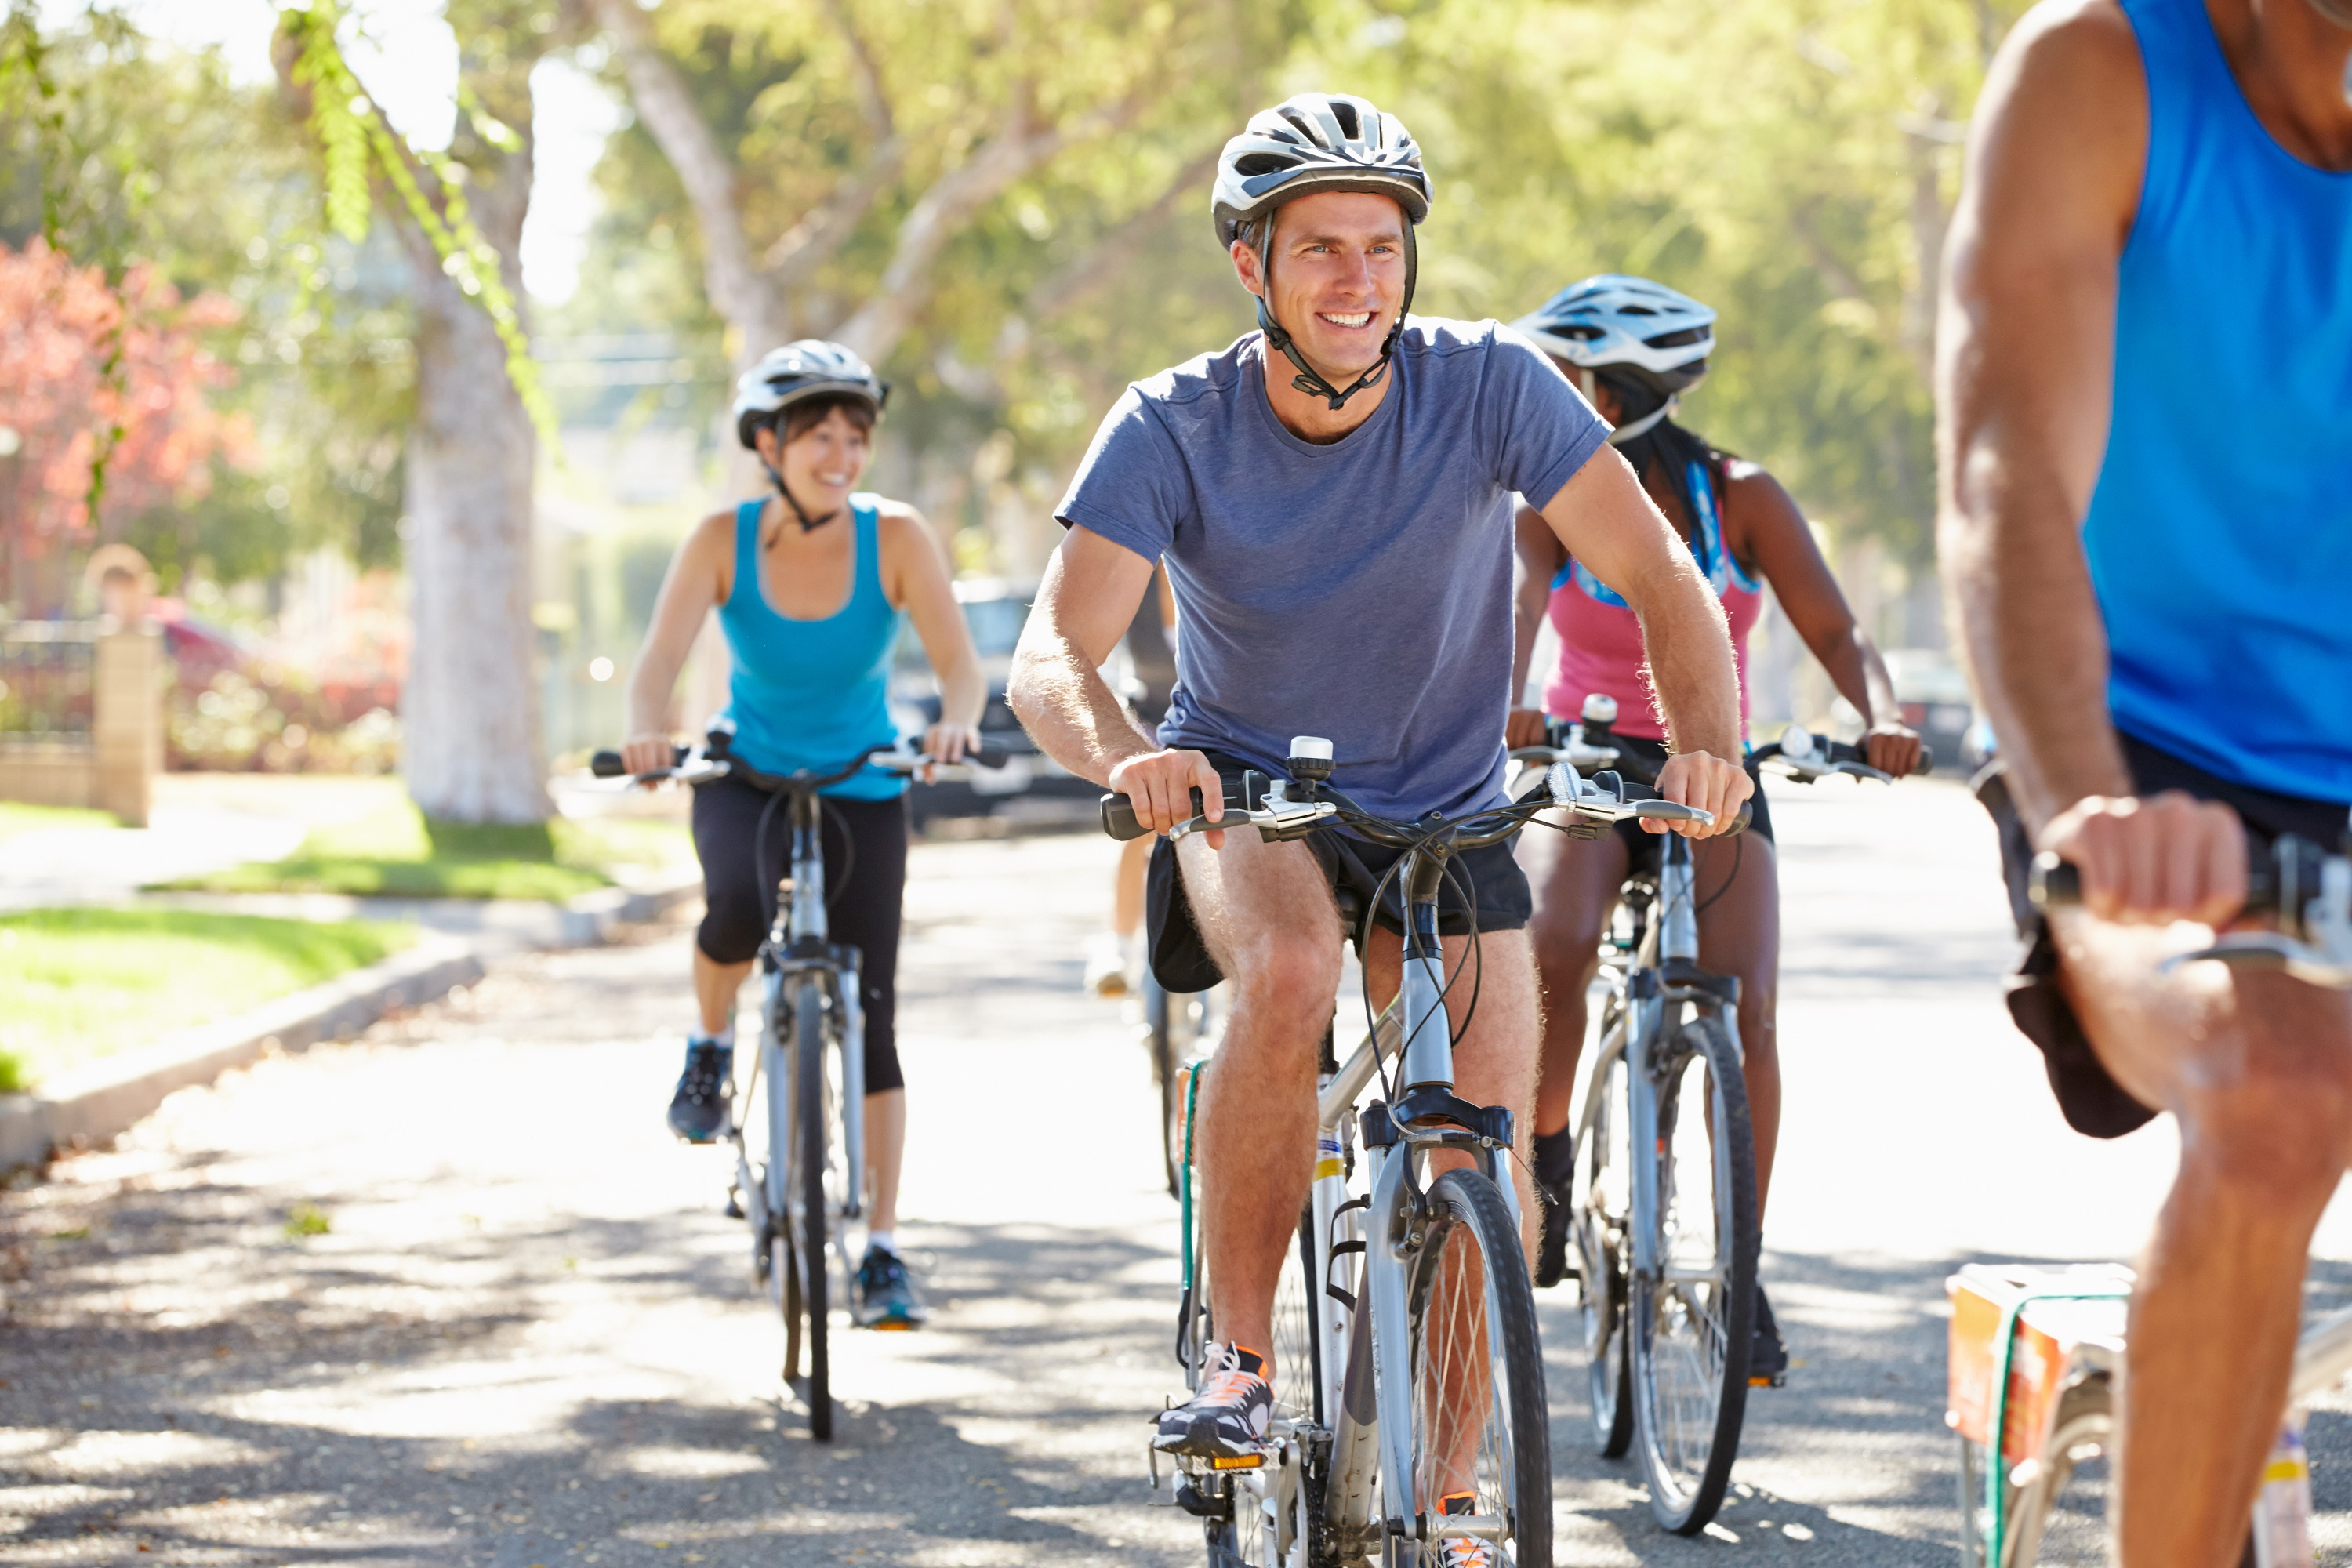 Priority Health - Personal Wellness - Bike Ride Safety - Groups